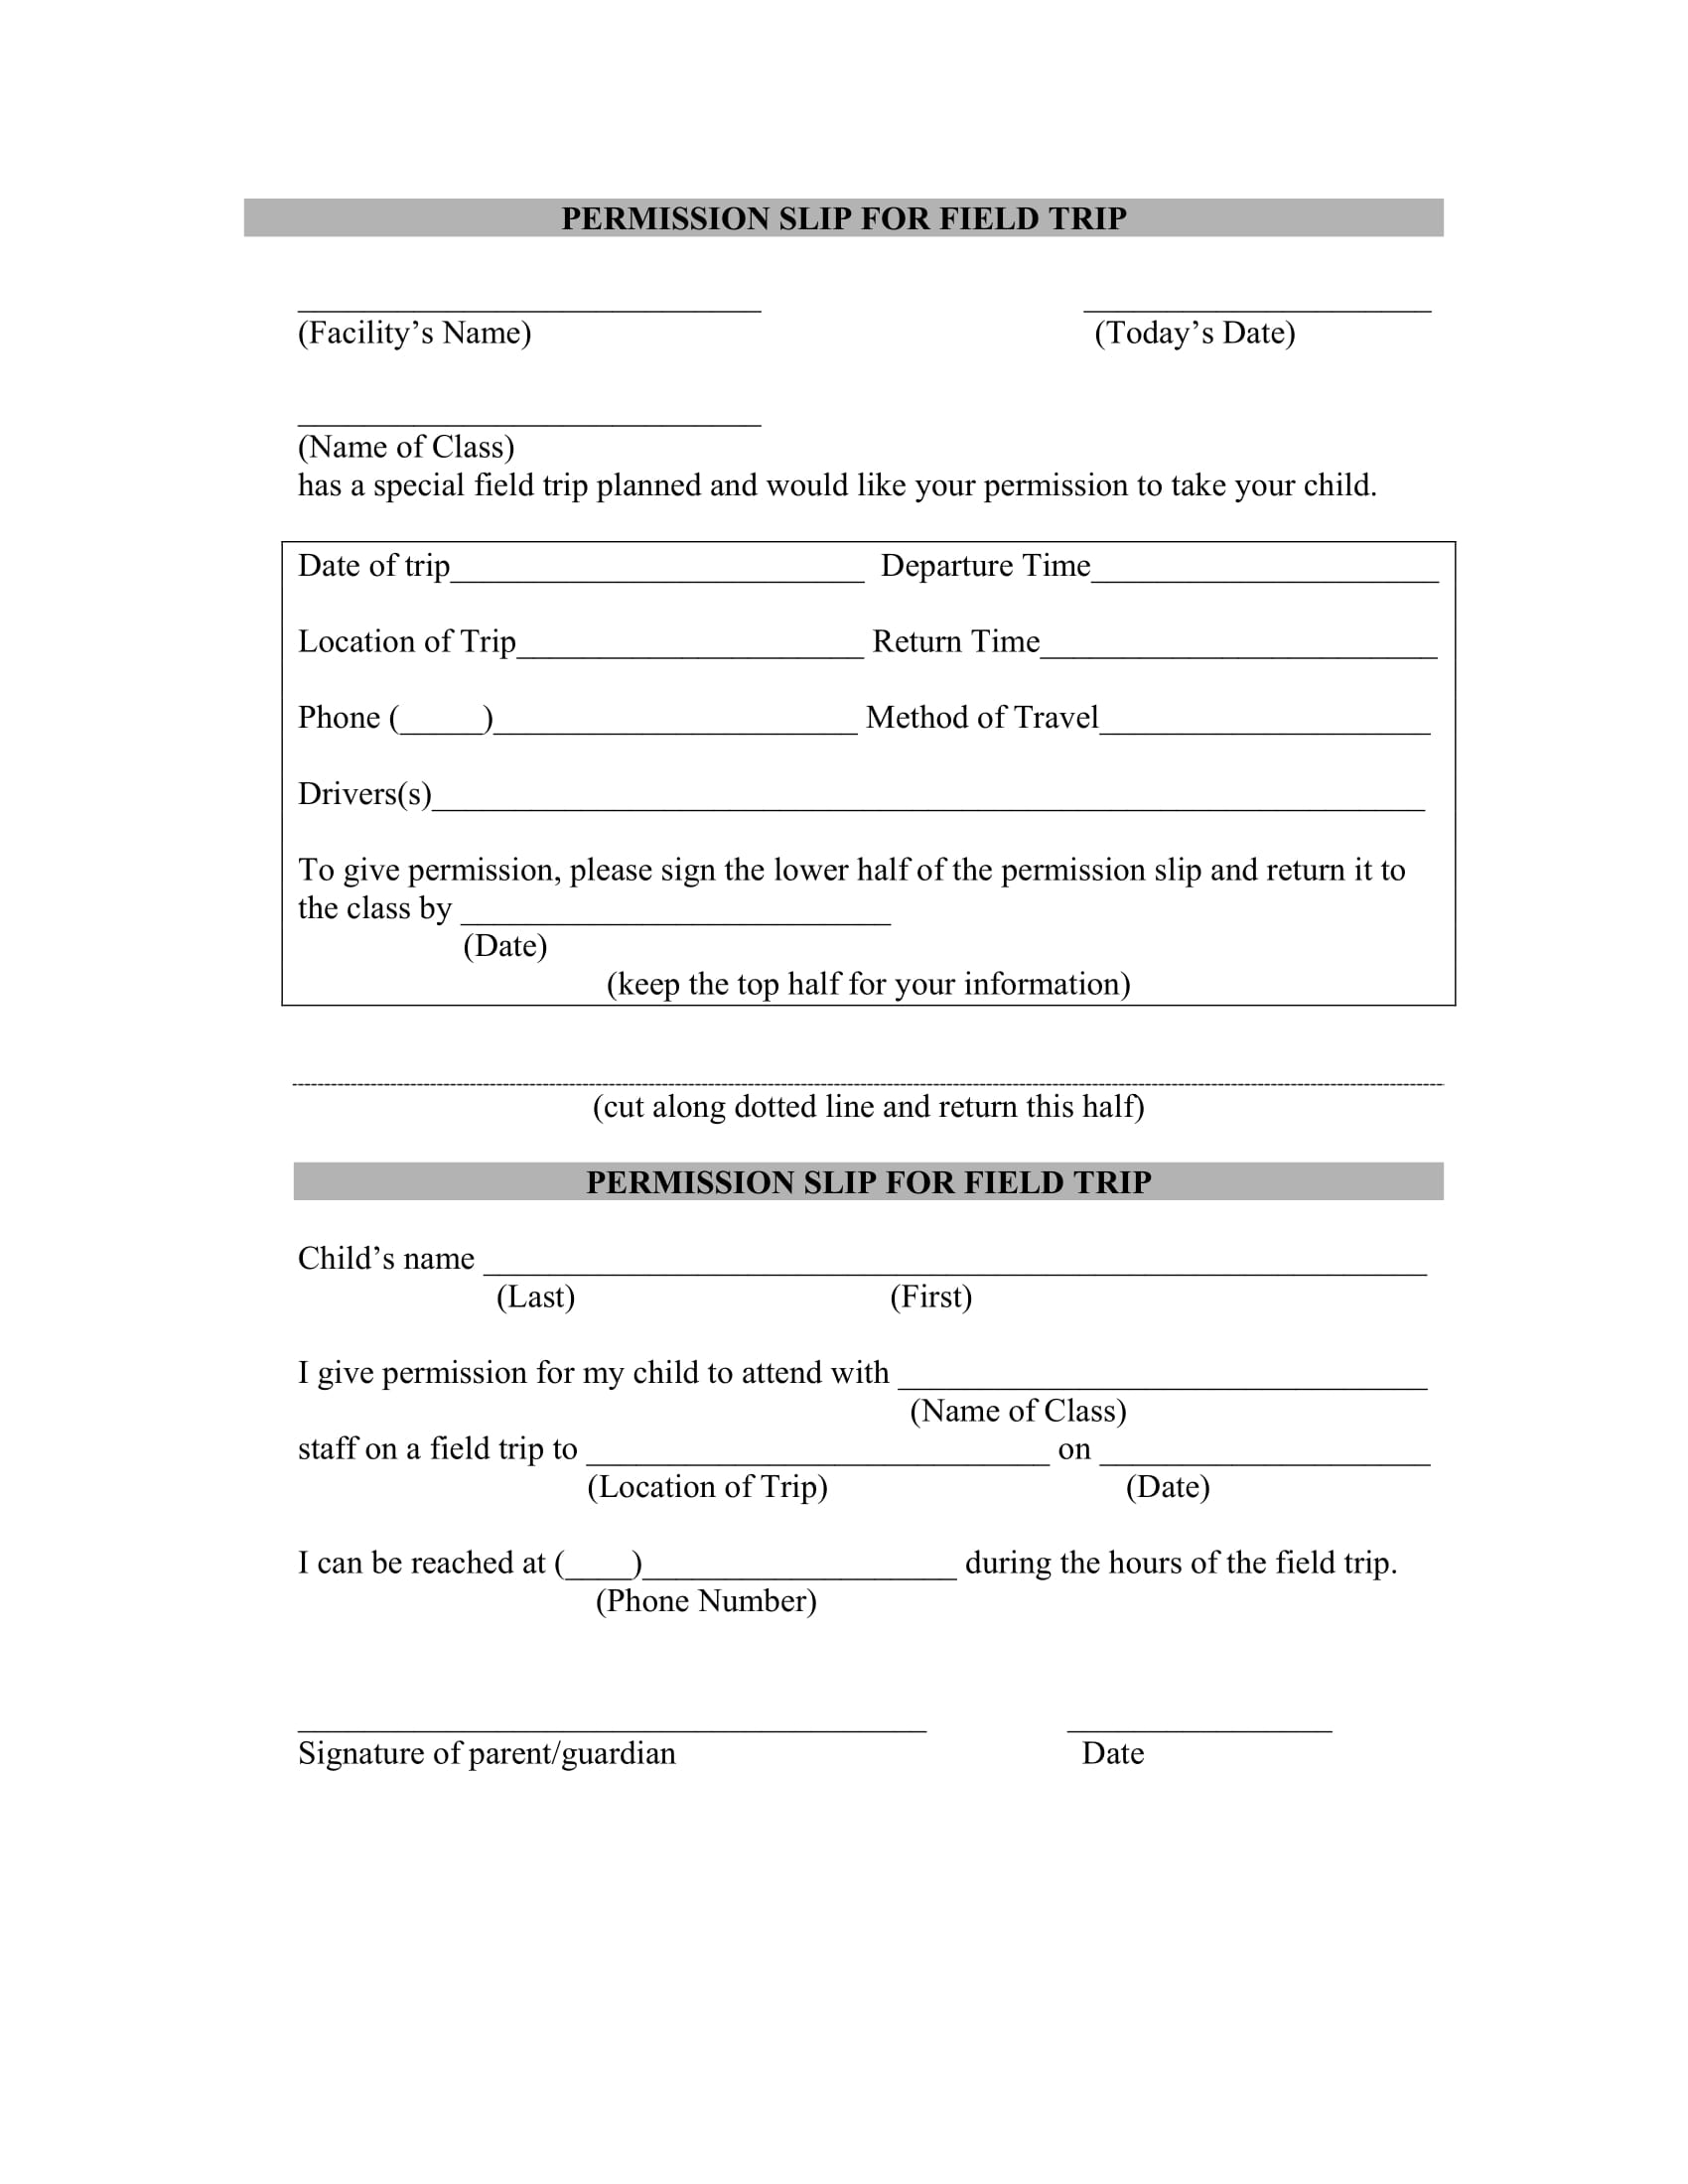 12 permission slip templates and examples pdf field trip permission slip example maxwellsz